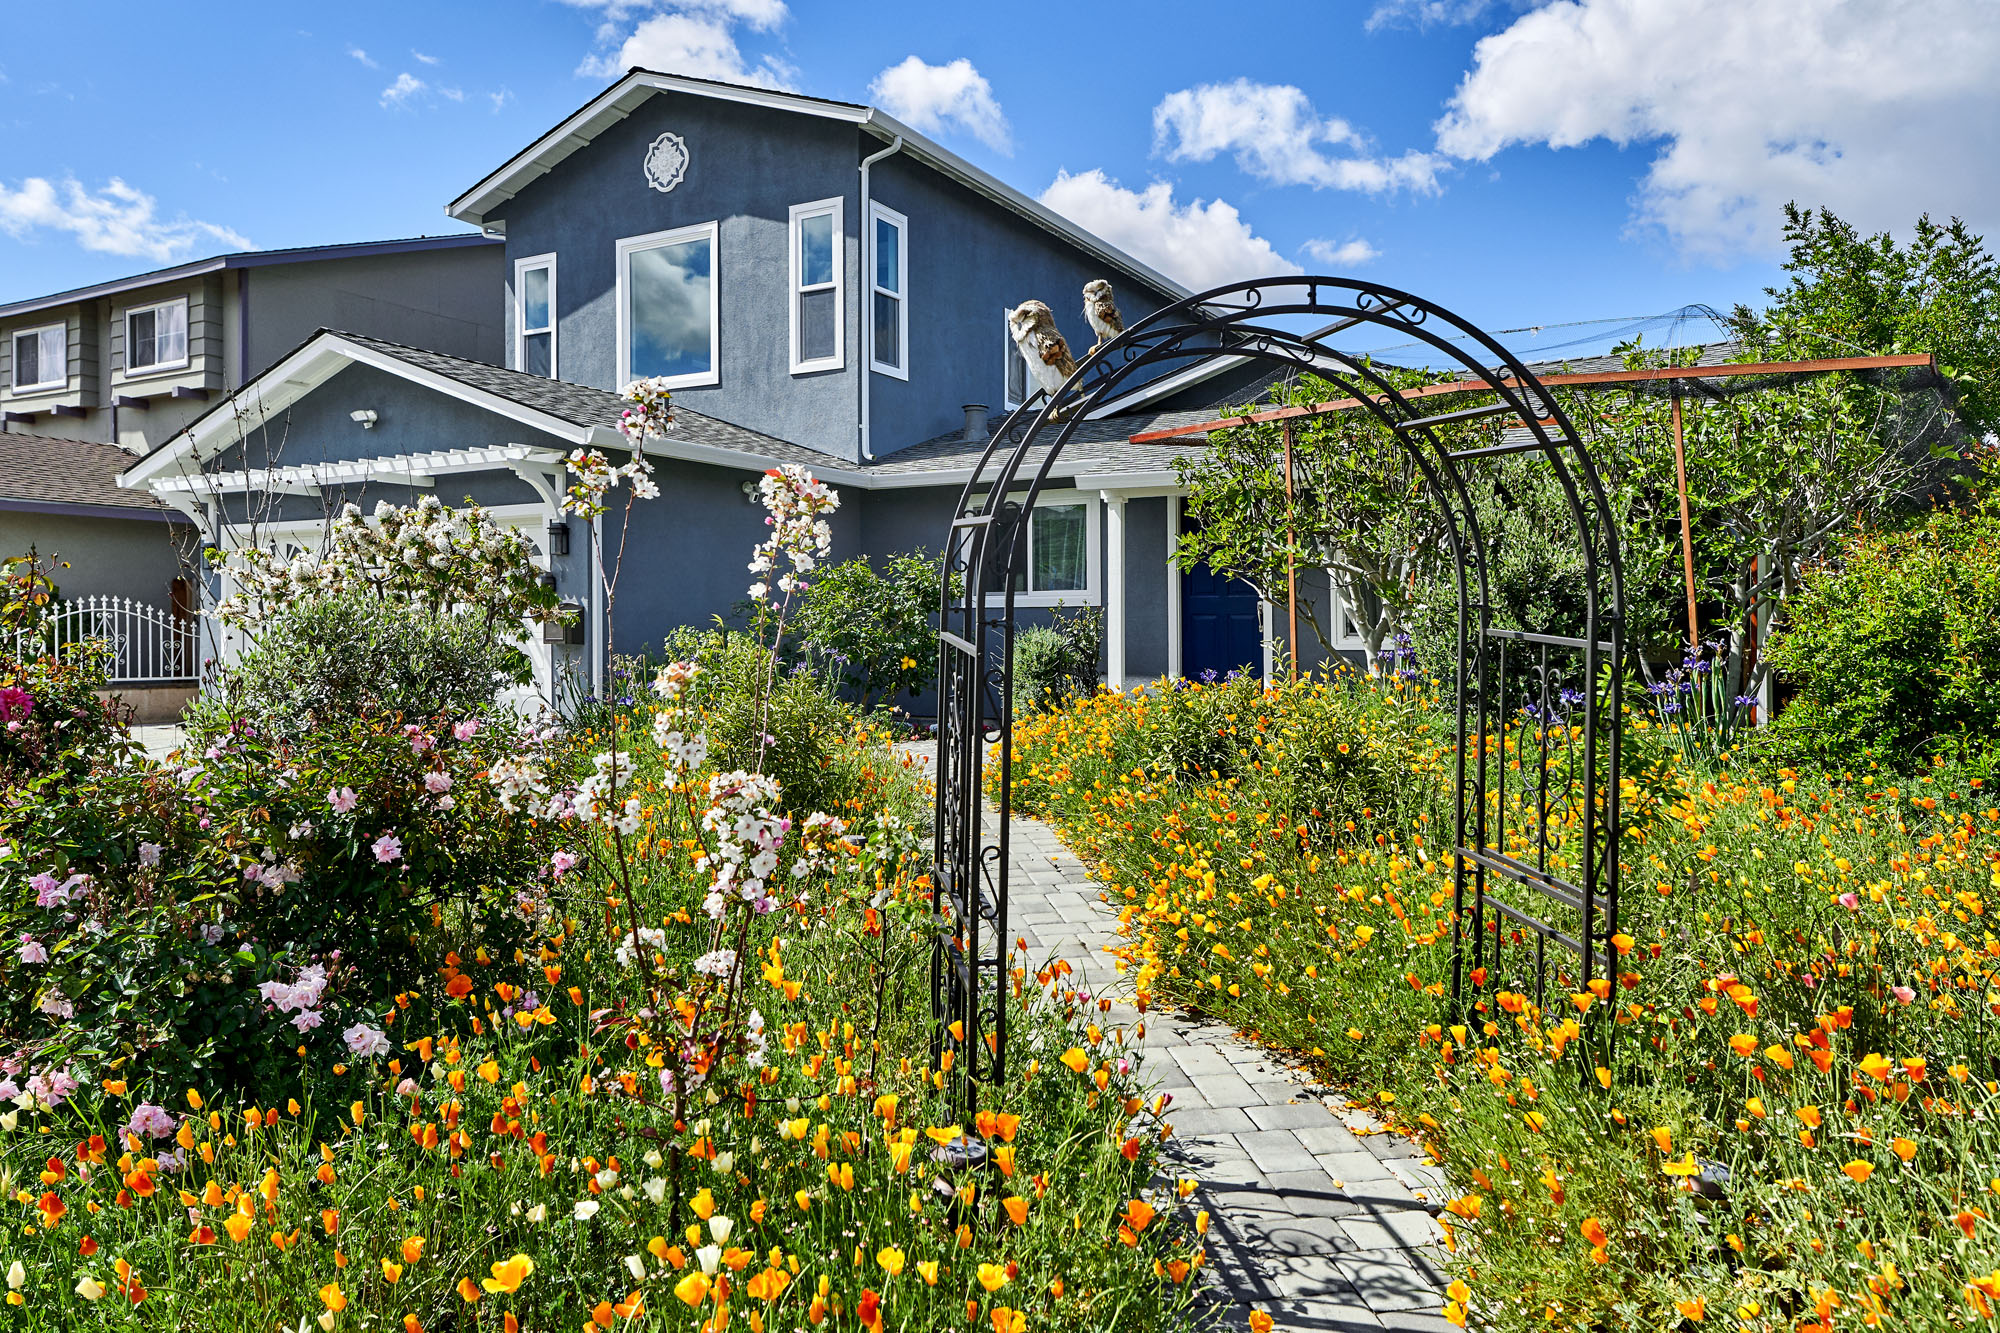 Thriving front yard landscape which helped anchor the home.